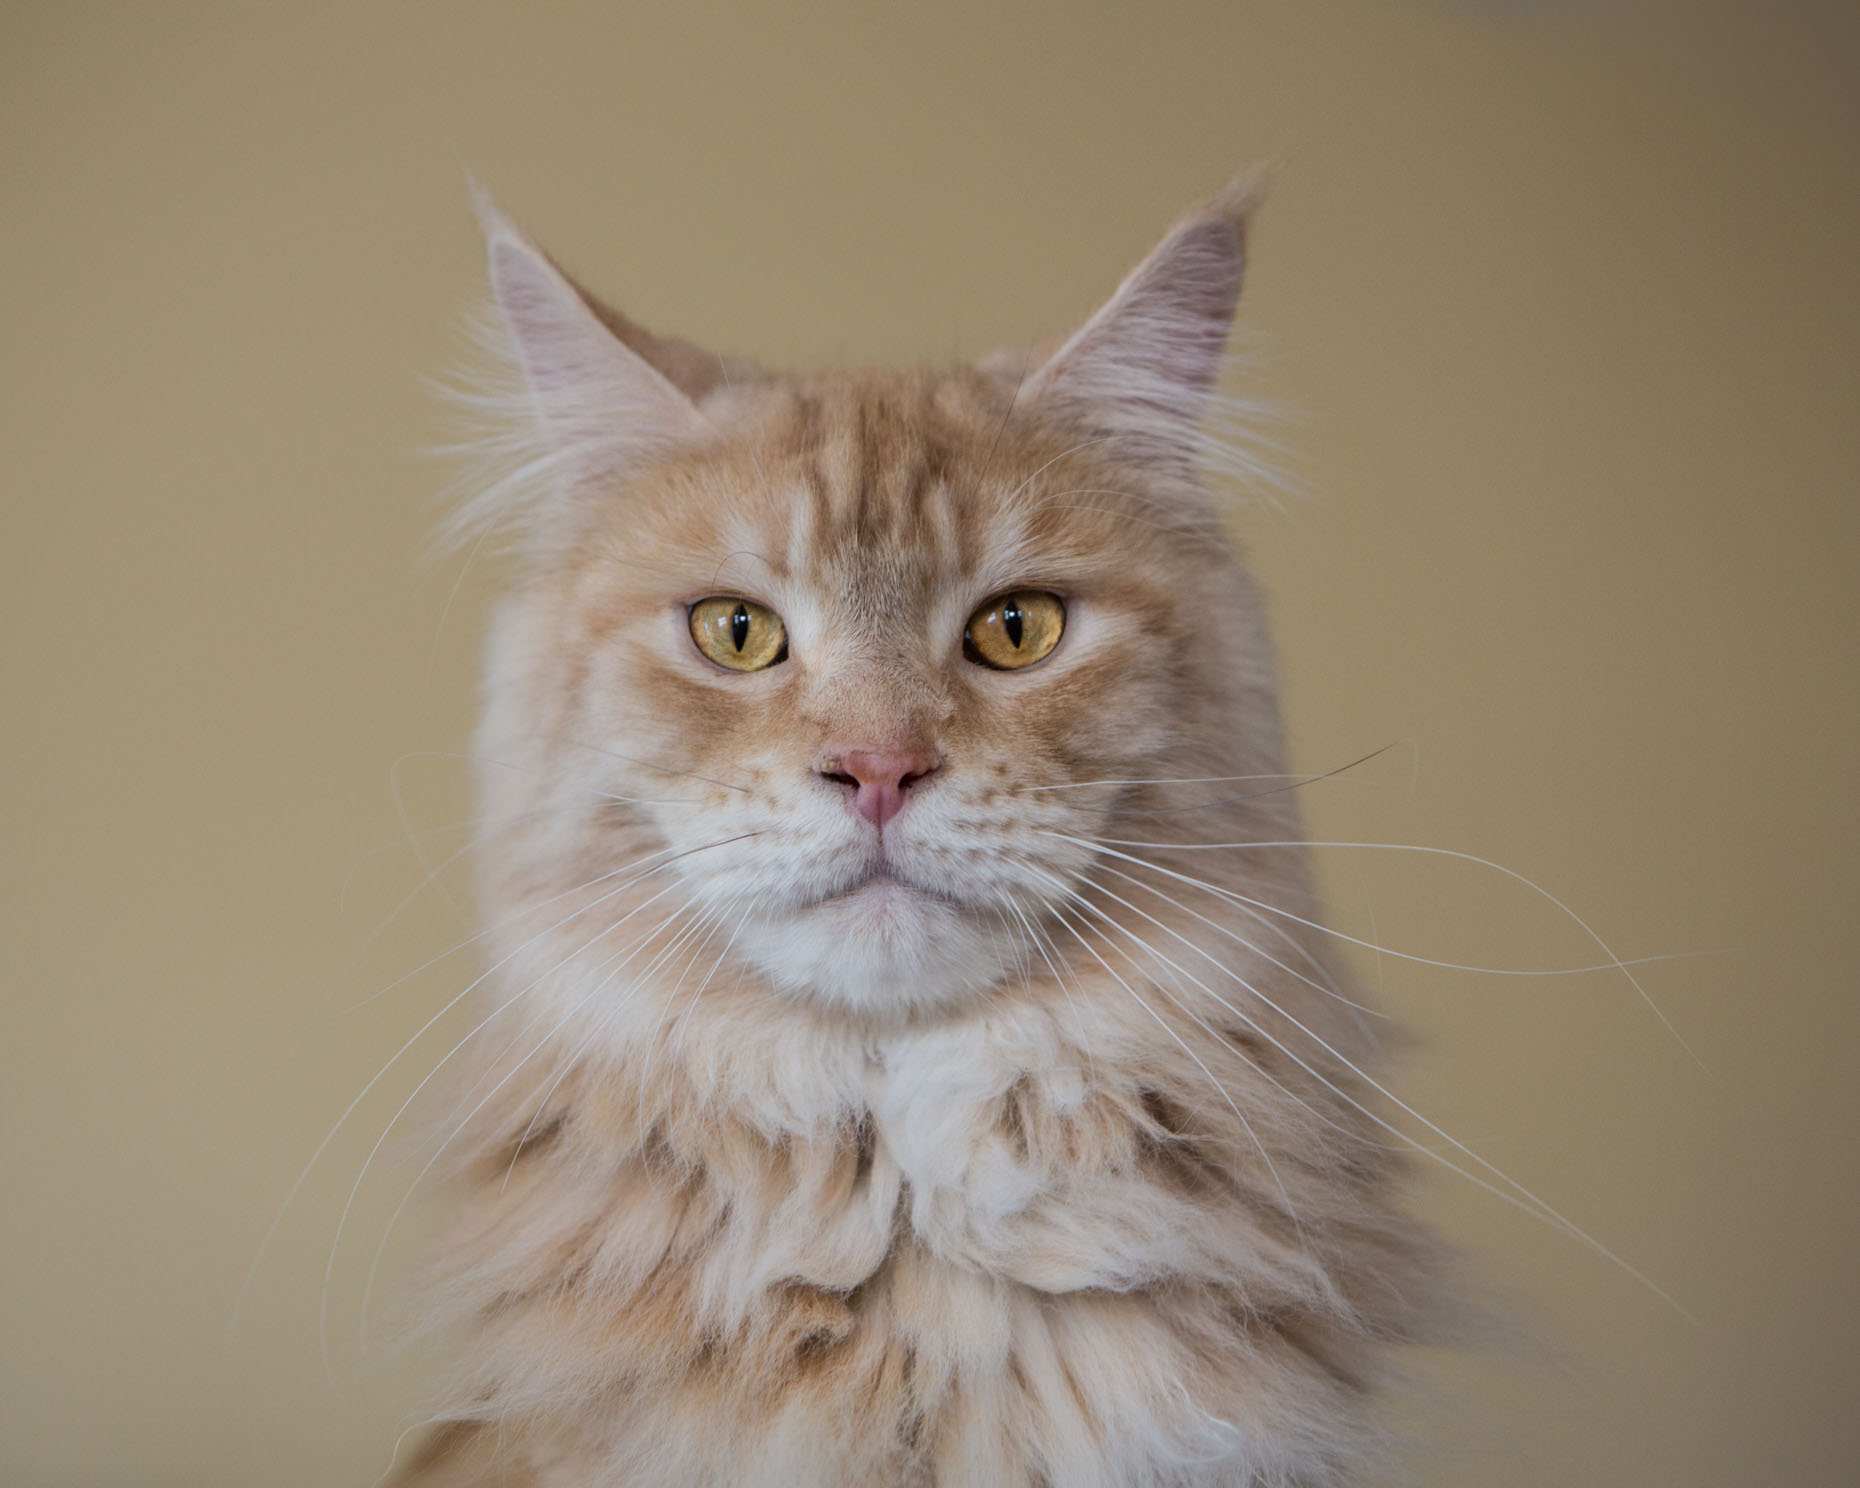 Cat and Pet Photography | Dignified  Cat by Mark Rogers